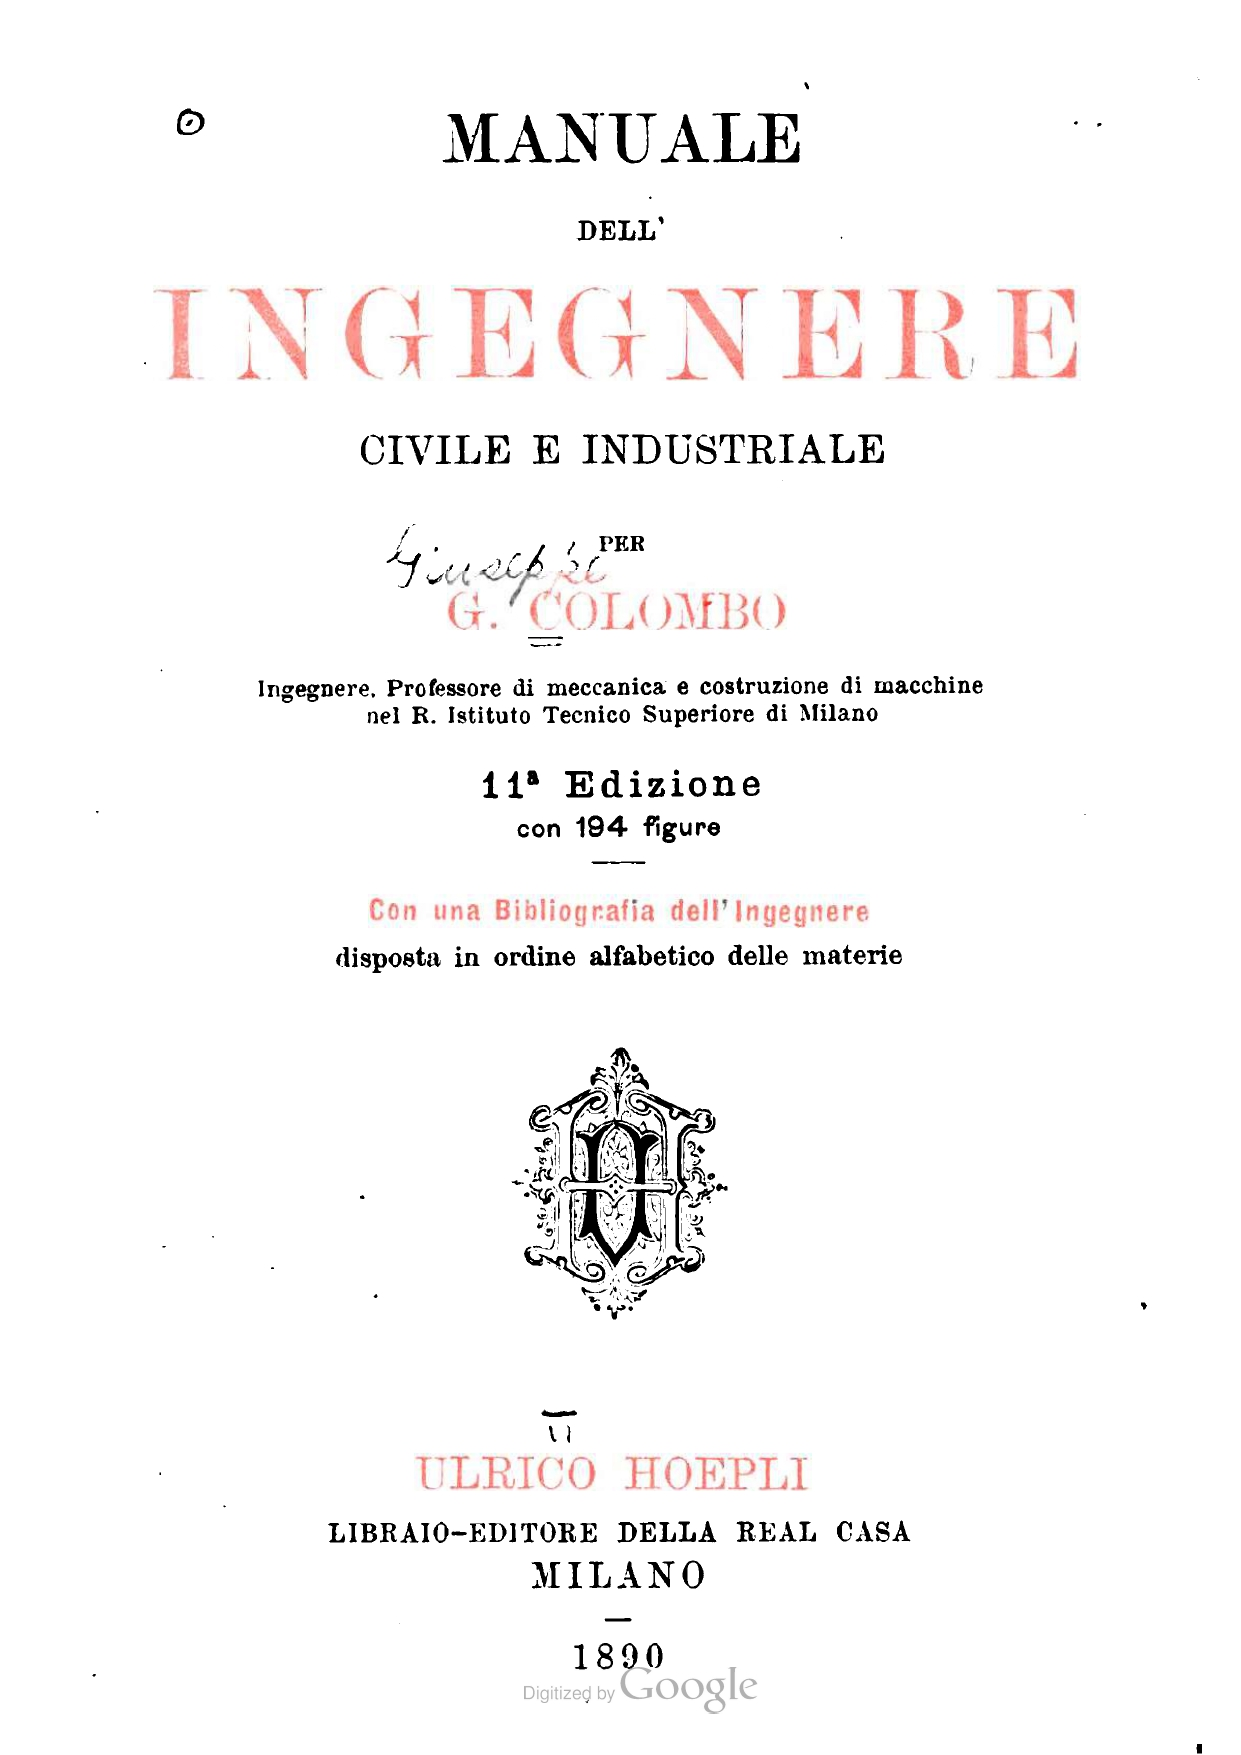 Manuale dell'ingegnere civile e industriale.  G. Colombo.